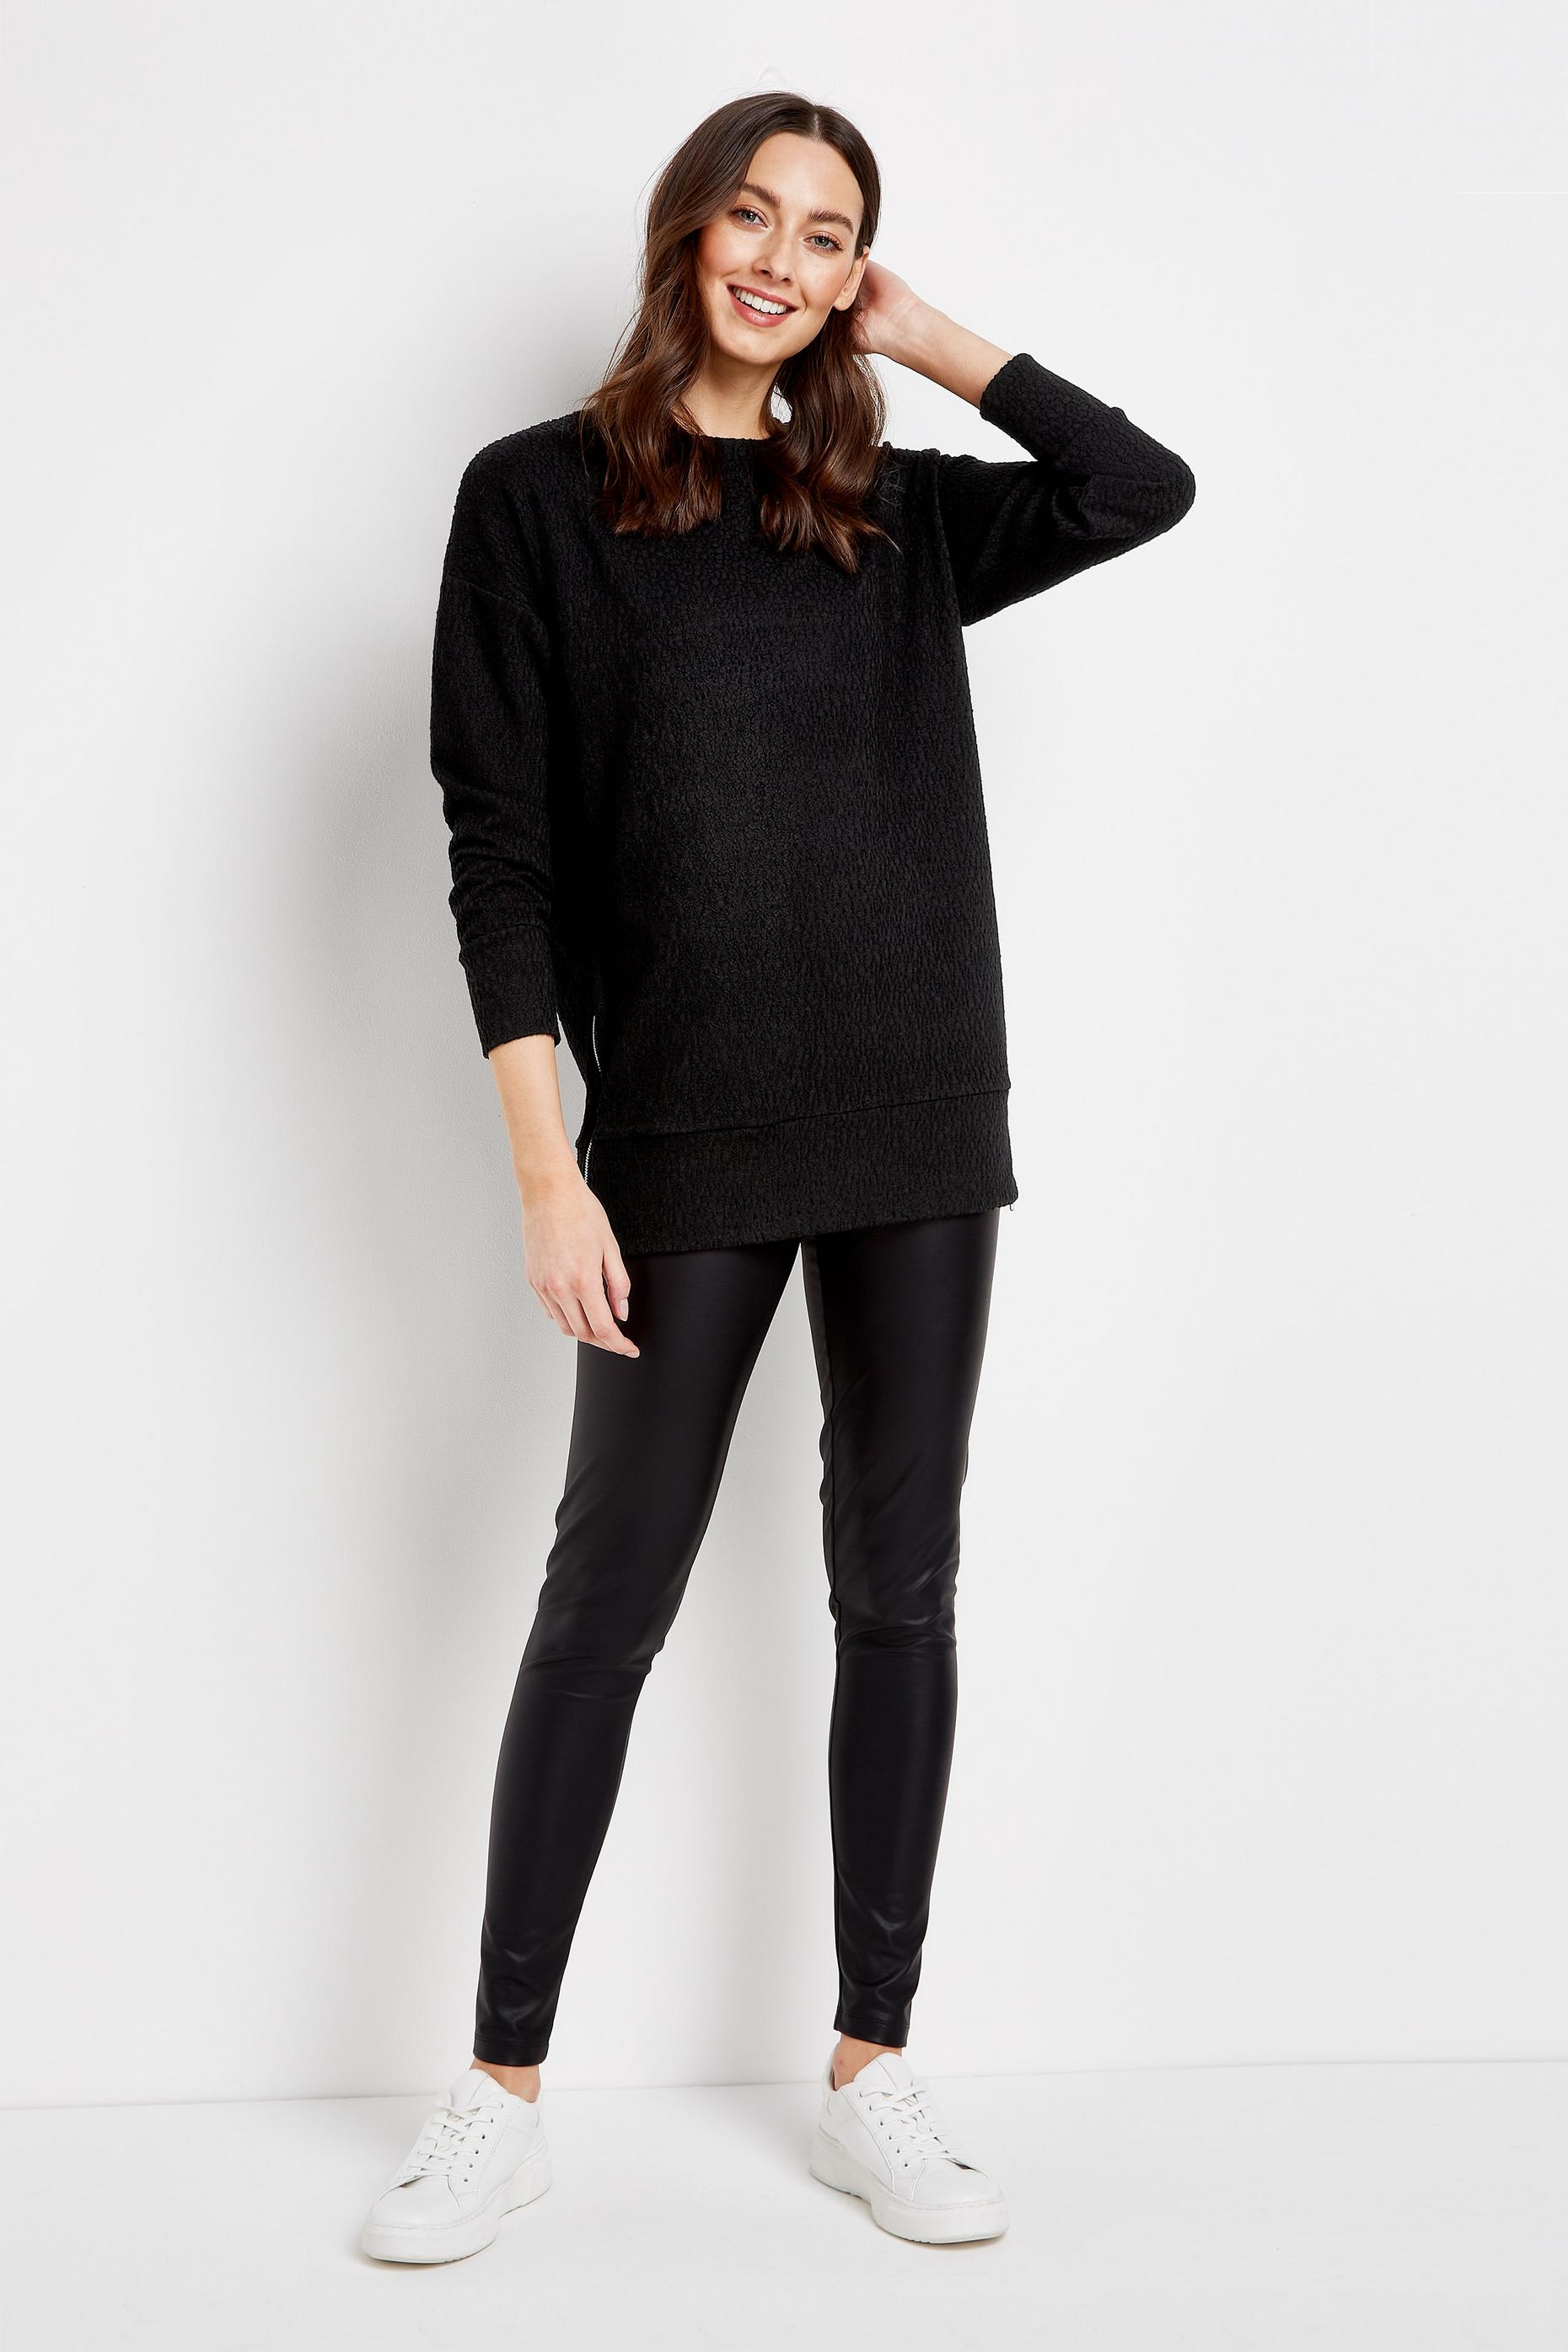 Black Side Zip Tunic Top